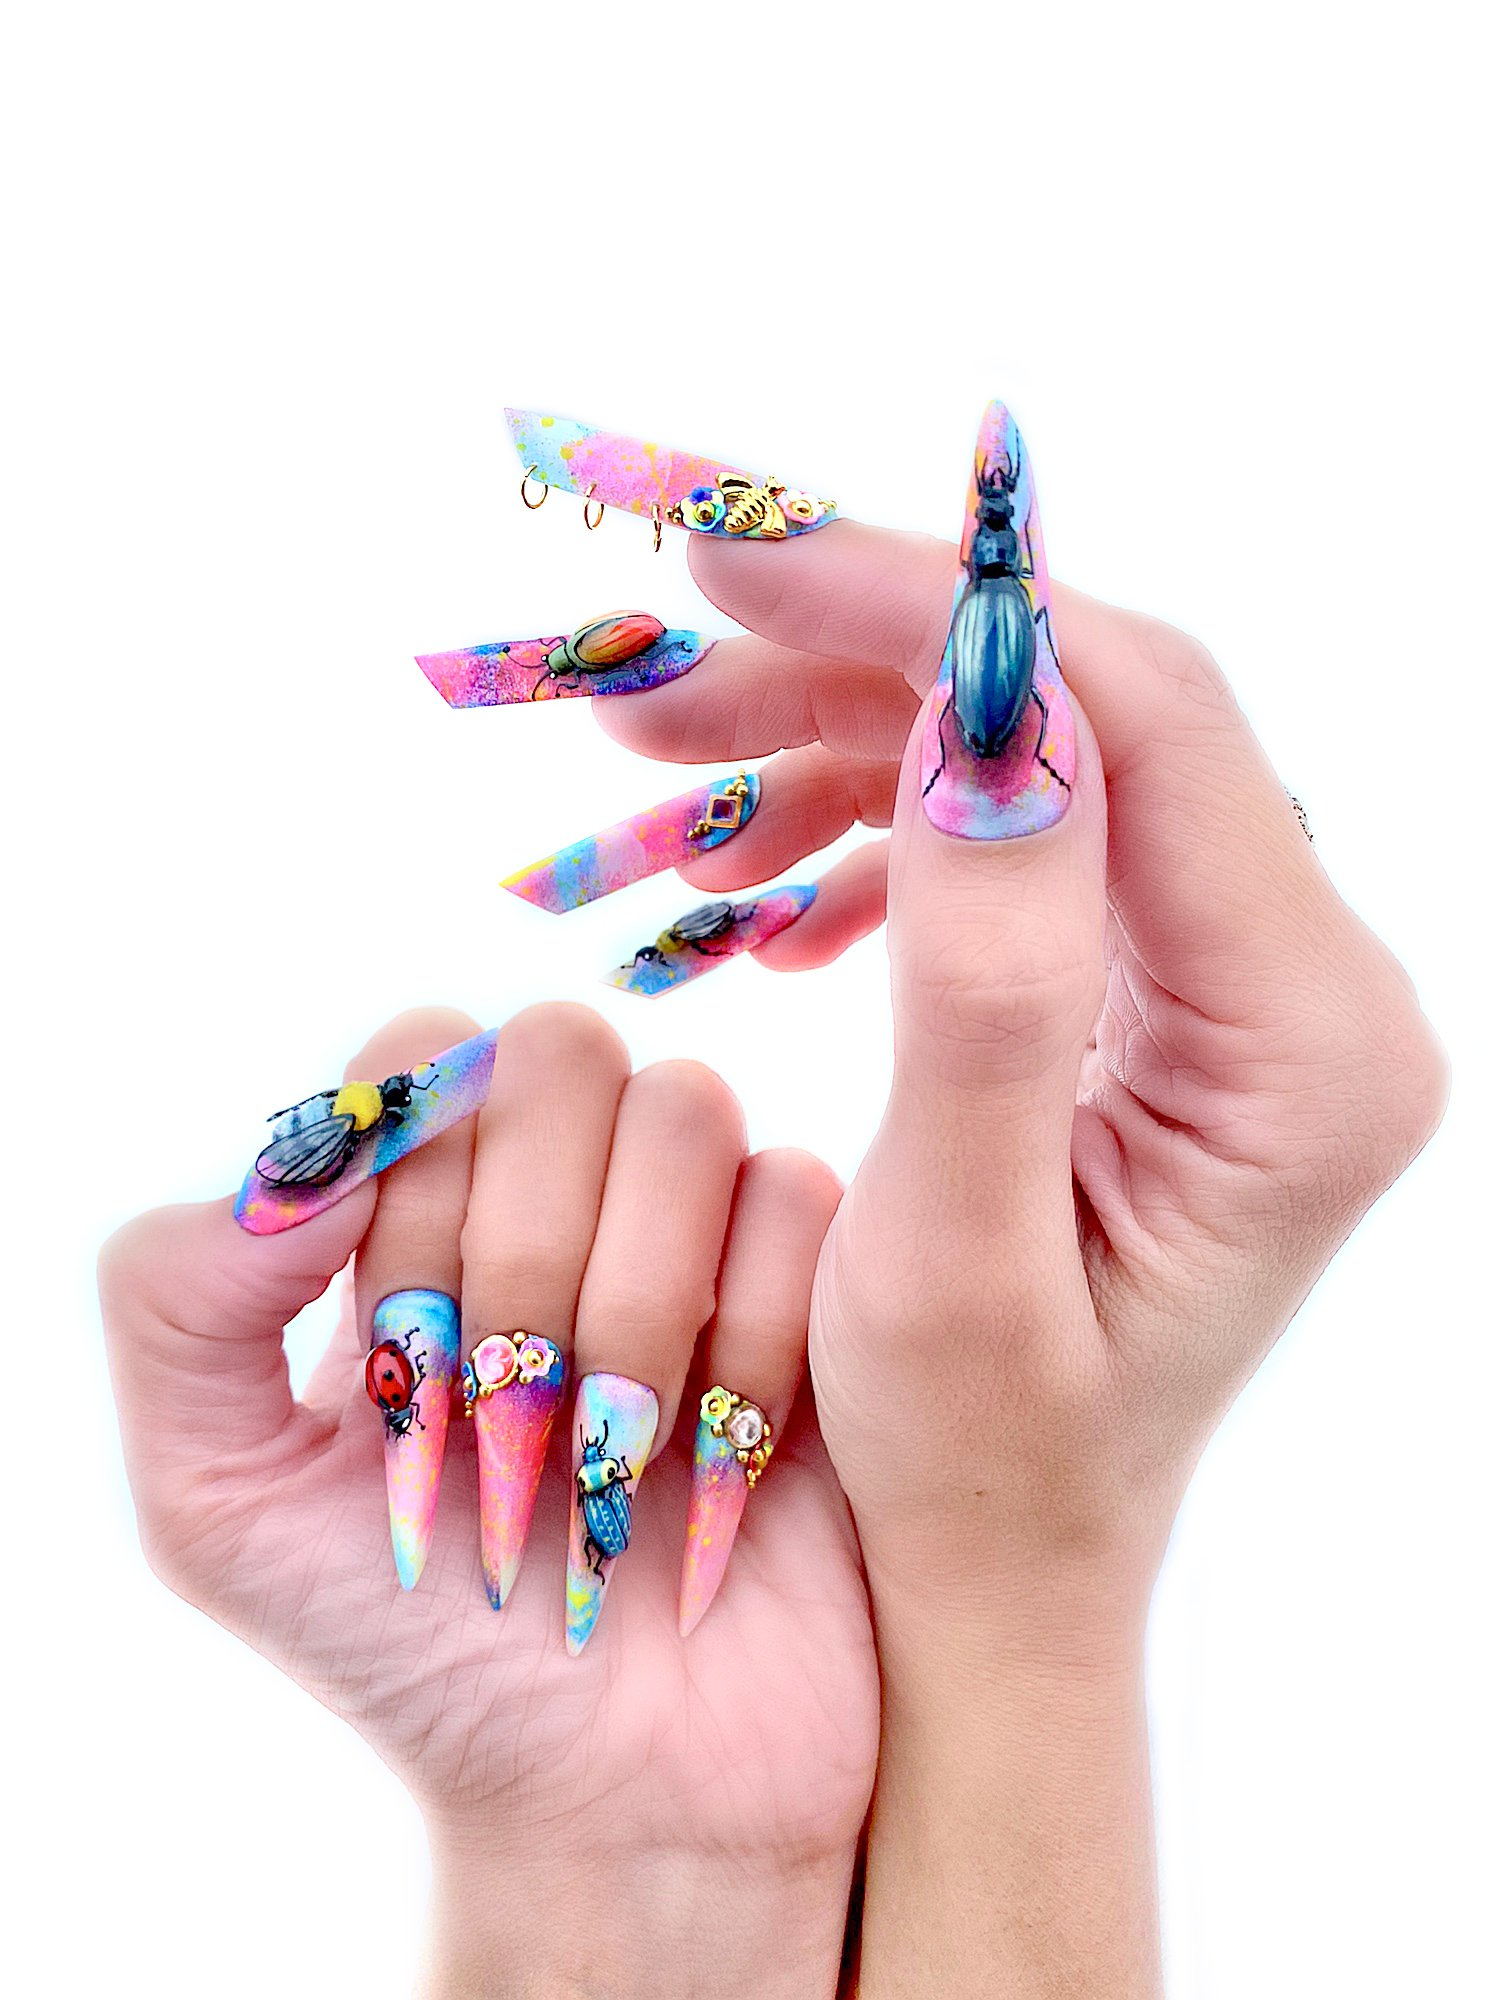 OPI NTNA Challenge 3: Colorful Insect Nail Art (Deanna)